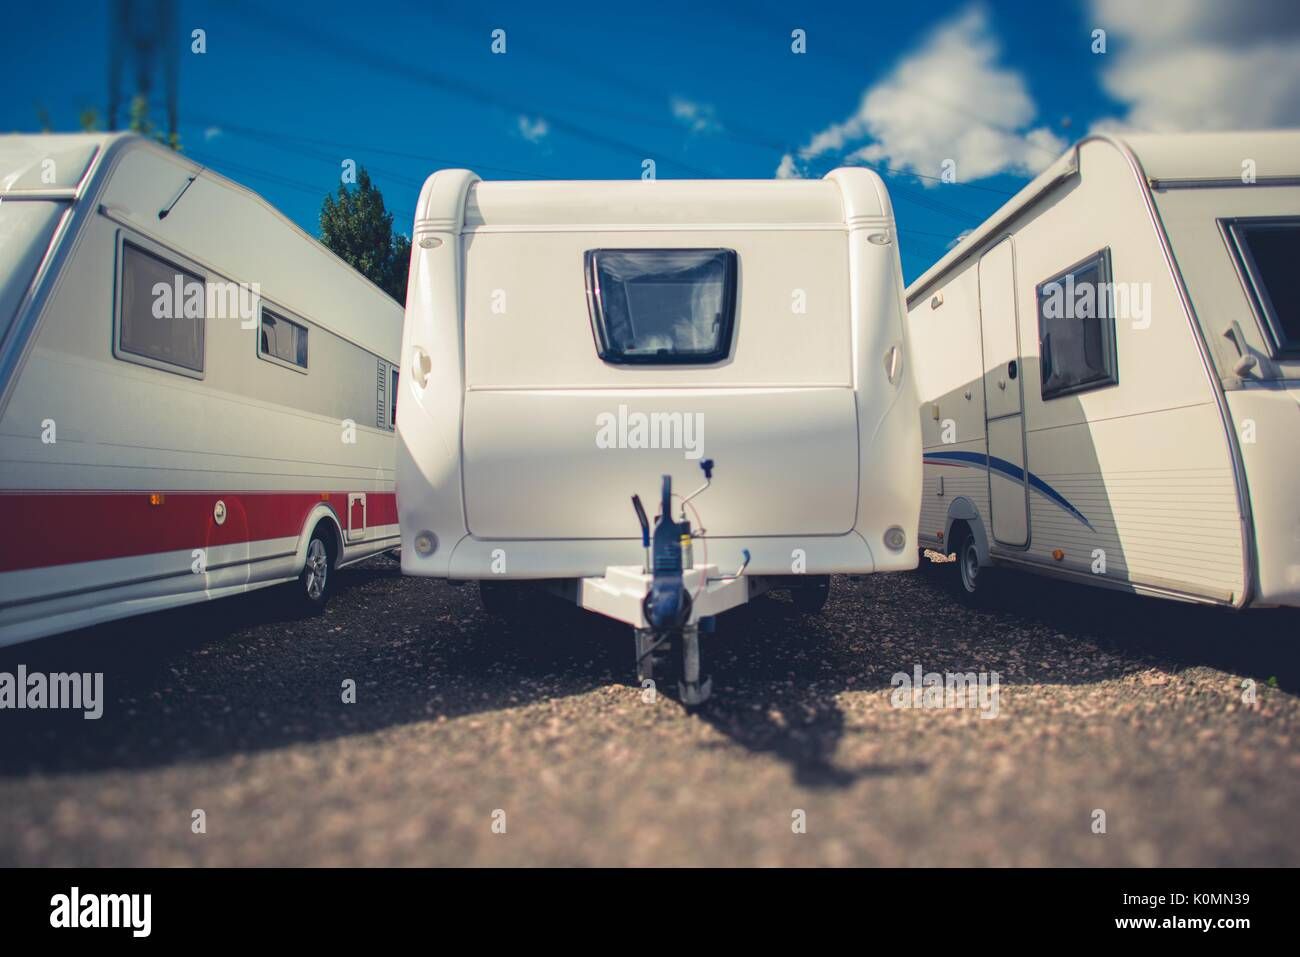 Pre Owned Travel Trailers For Sale. Campers and RVs Dealership Lot. - Stock Image